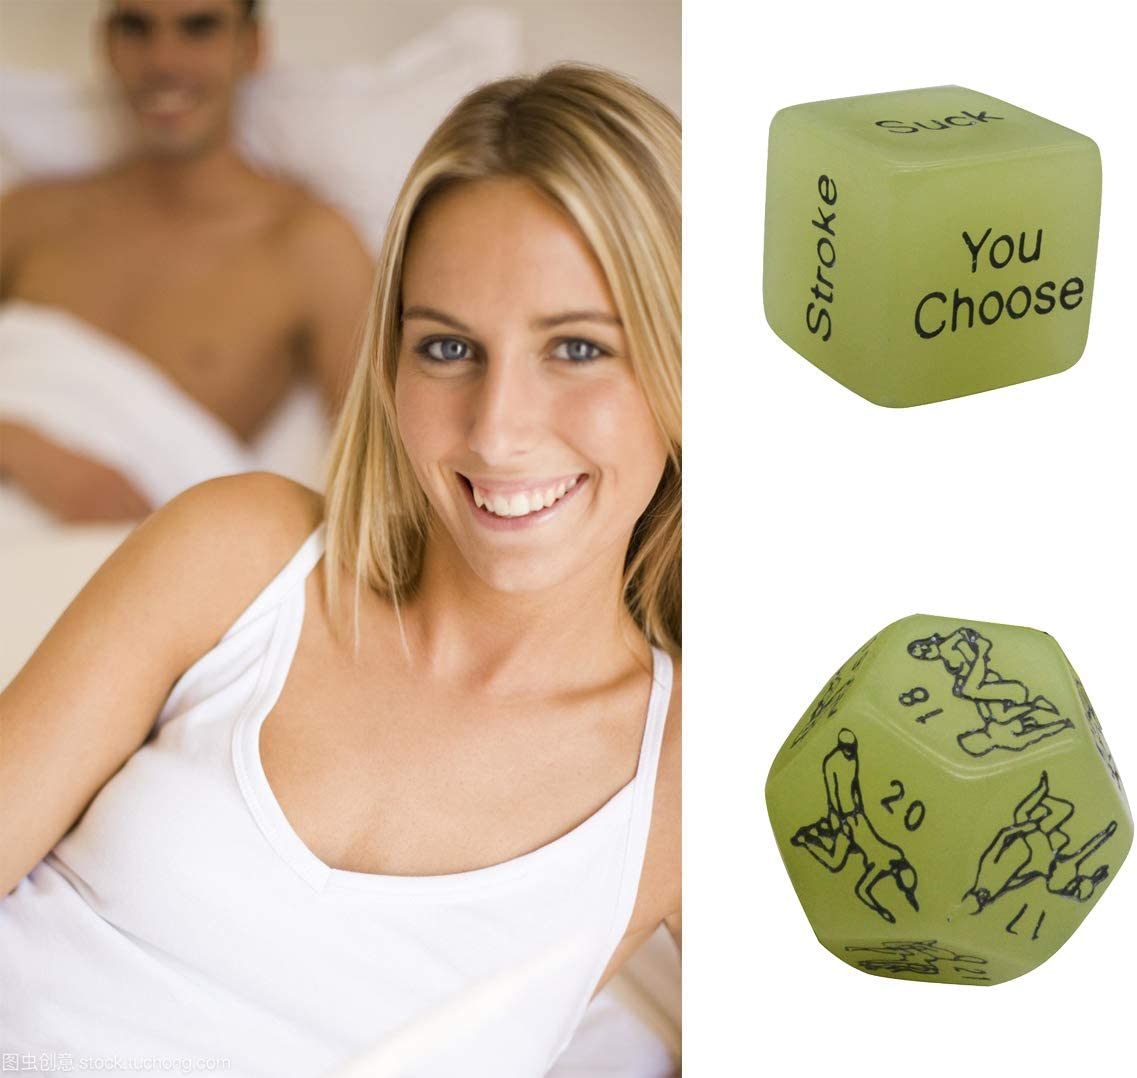 Marriage Anniversary Groom Roast Him and Her Newlyweds Bridal Shower Wedding 4pcs Romantic Novelty Game Dice Luminous Role Playing Funny Gift for Valentines Day Honeymoon Bachelorette Party